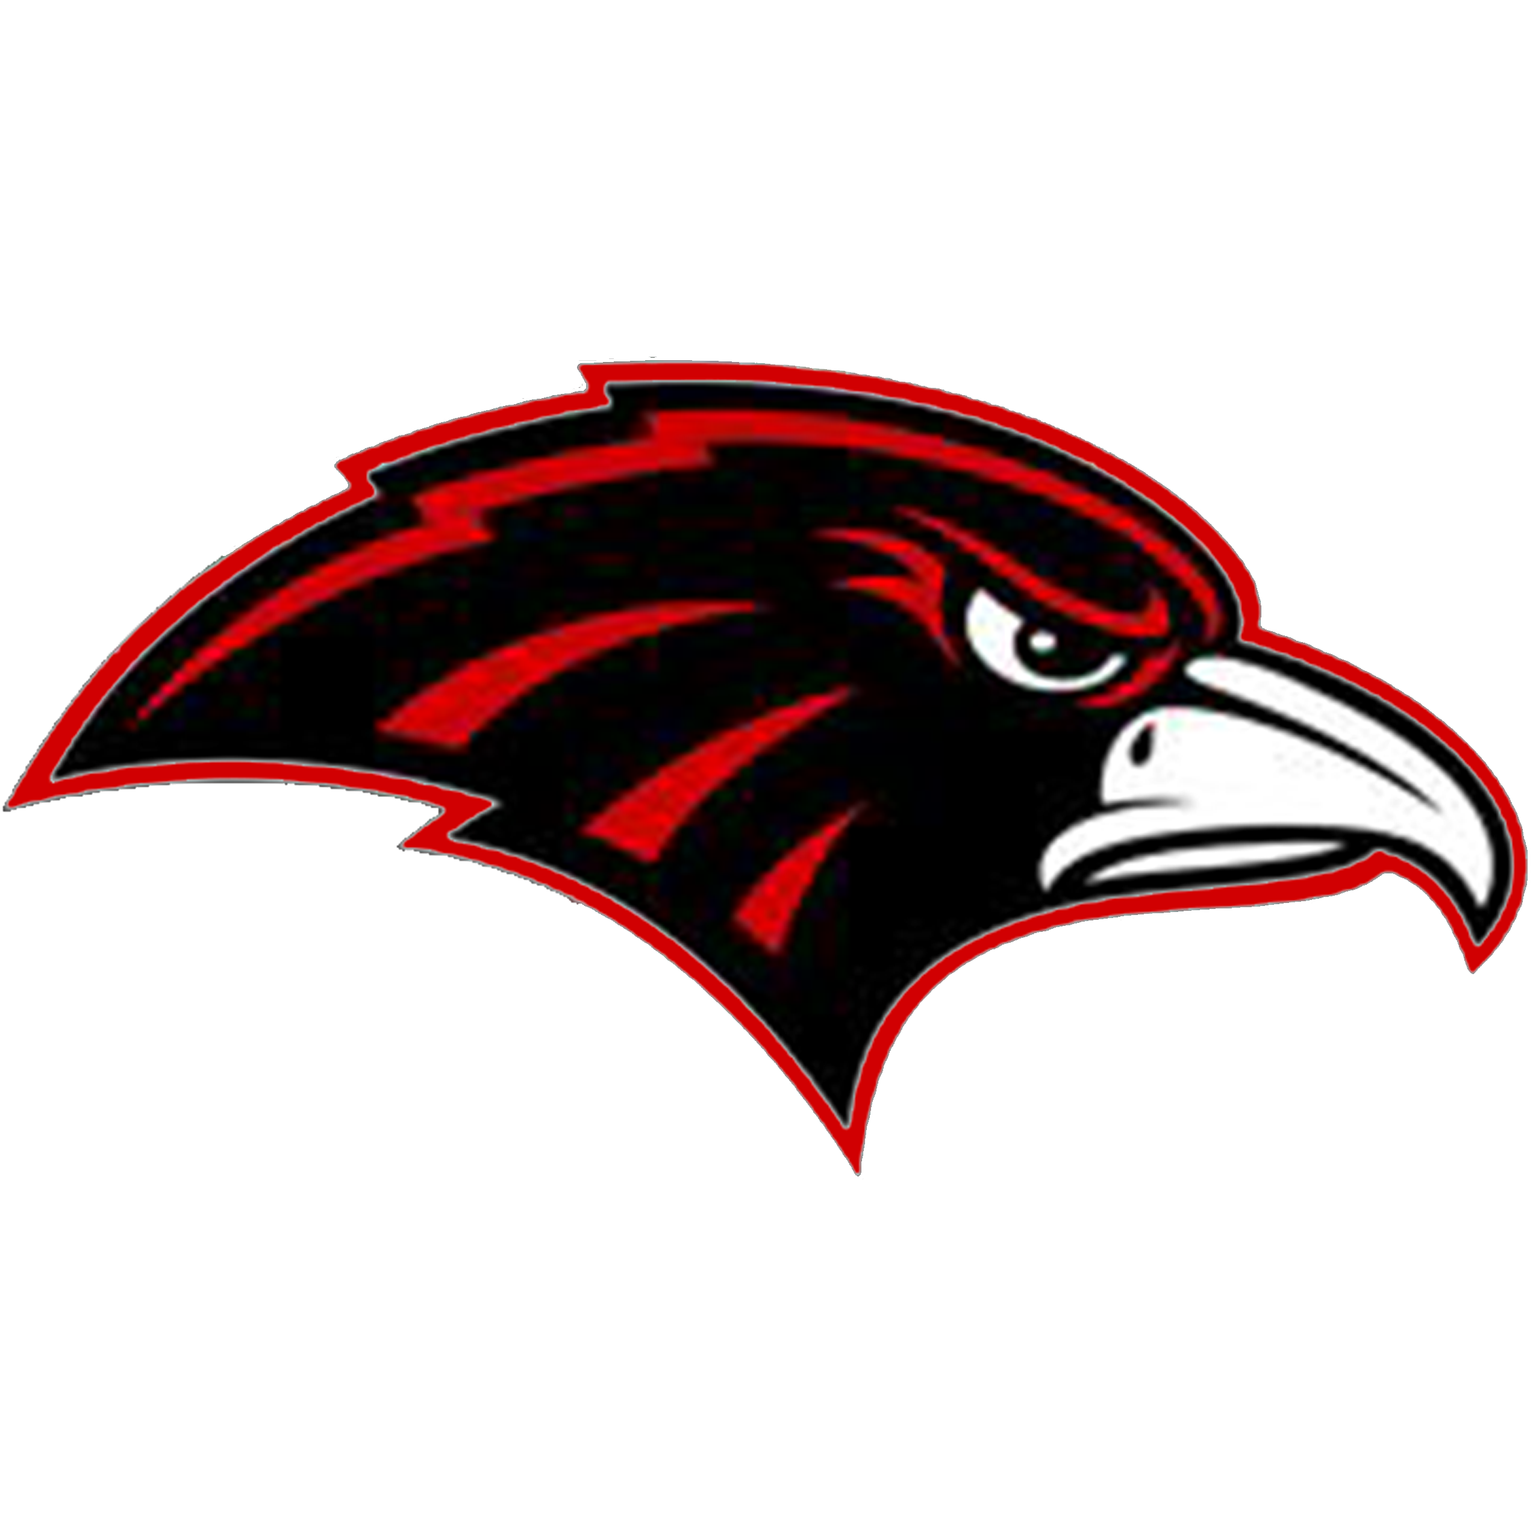 Murrieta Valley Nighthawks